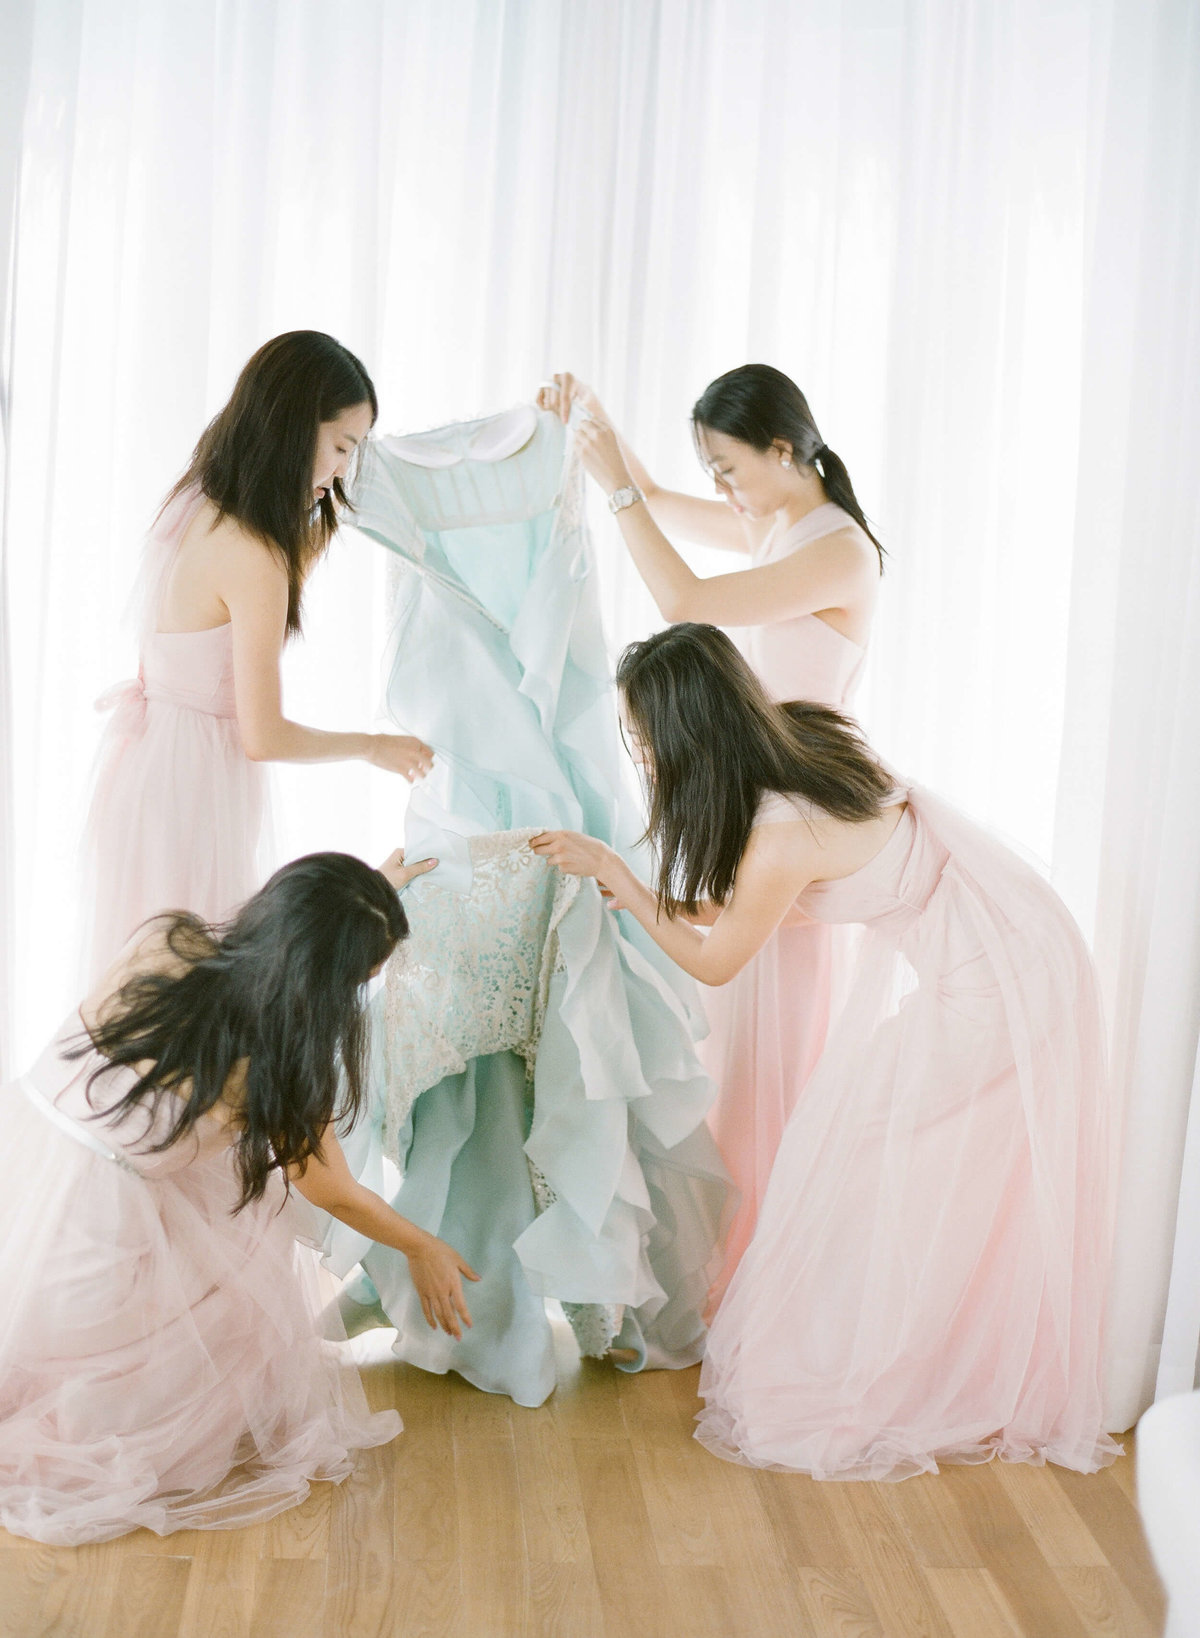 45-KTMerry-weddings-bridesmaids-preceremony